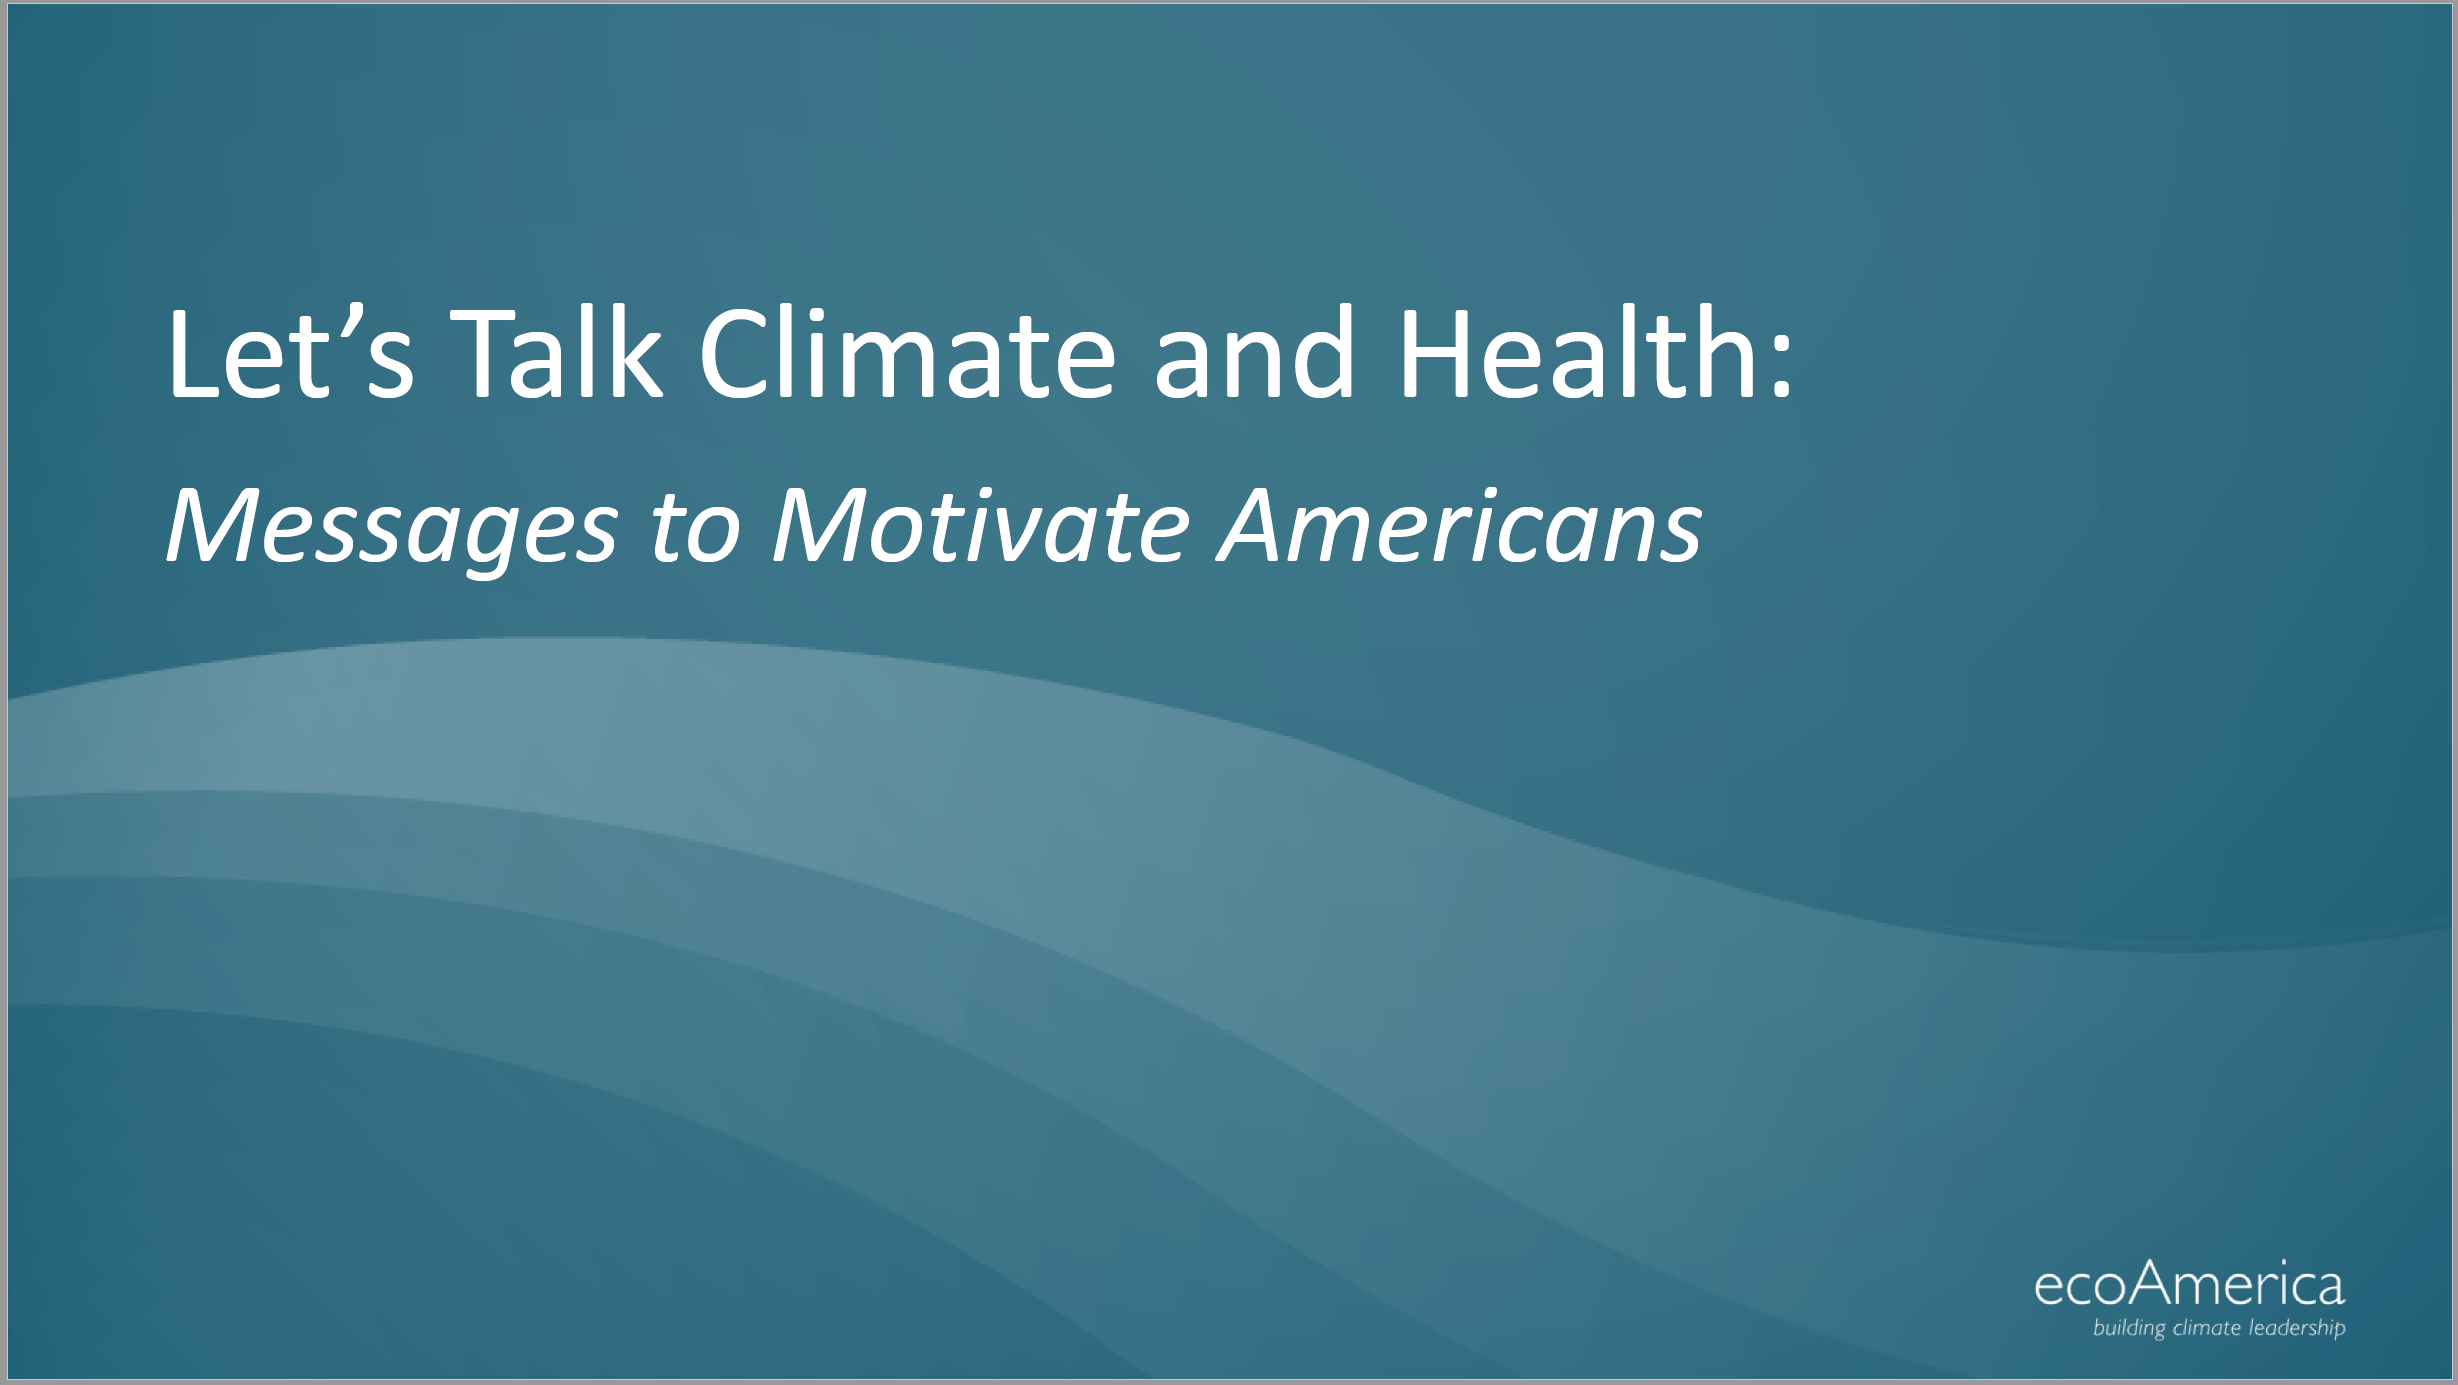 Let's Talk Climate and Health: Messages to Motivate Americans